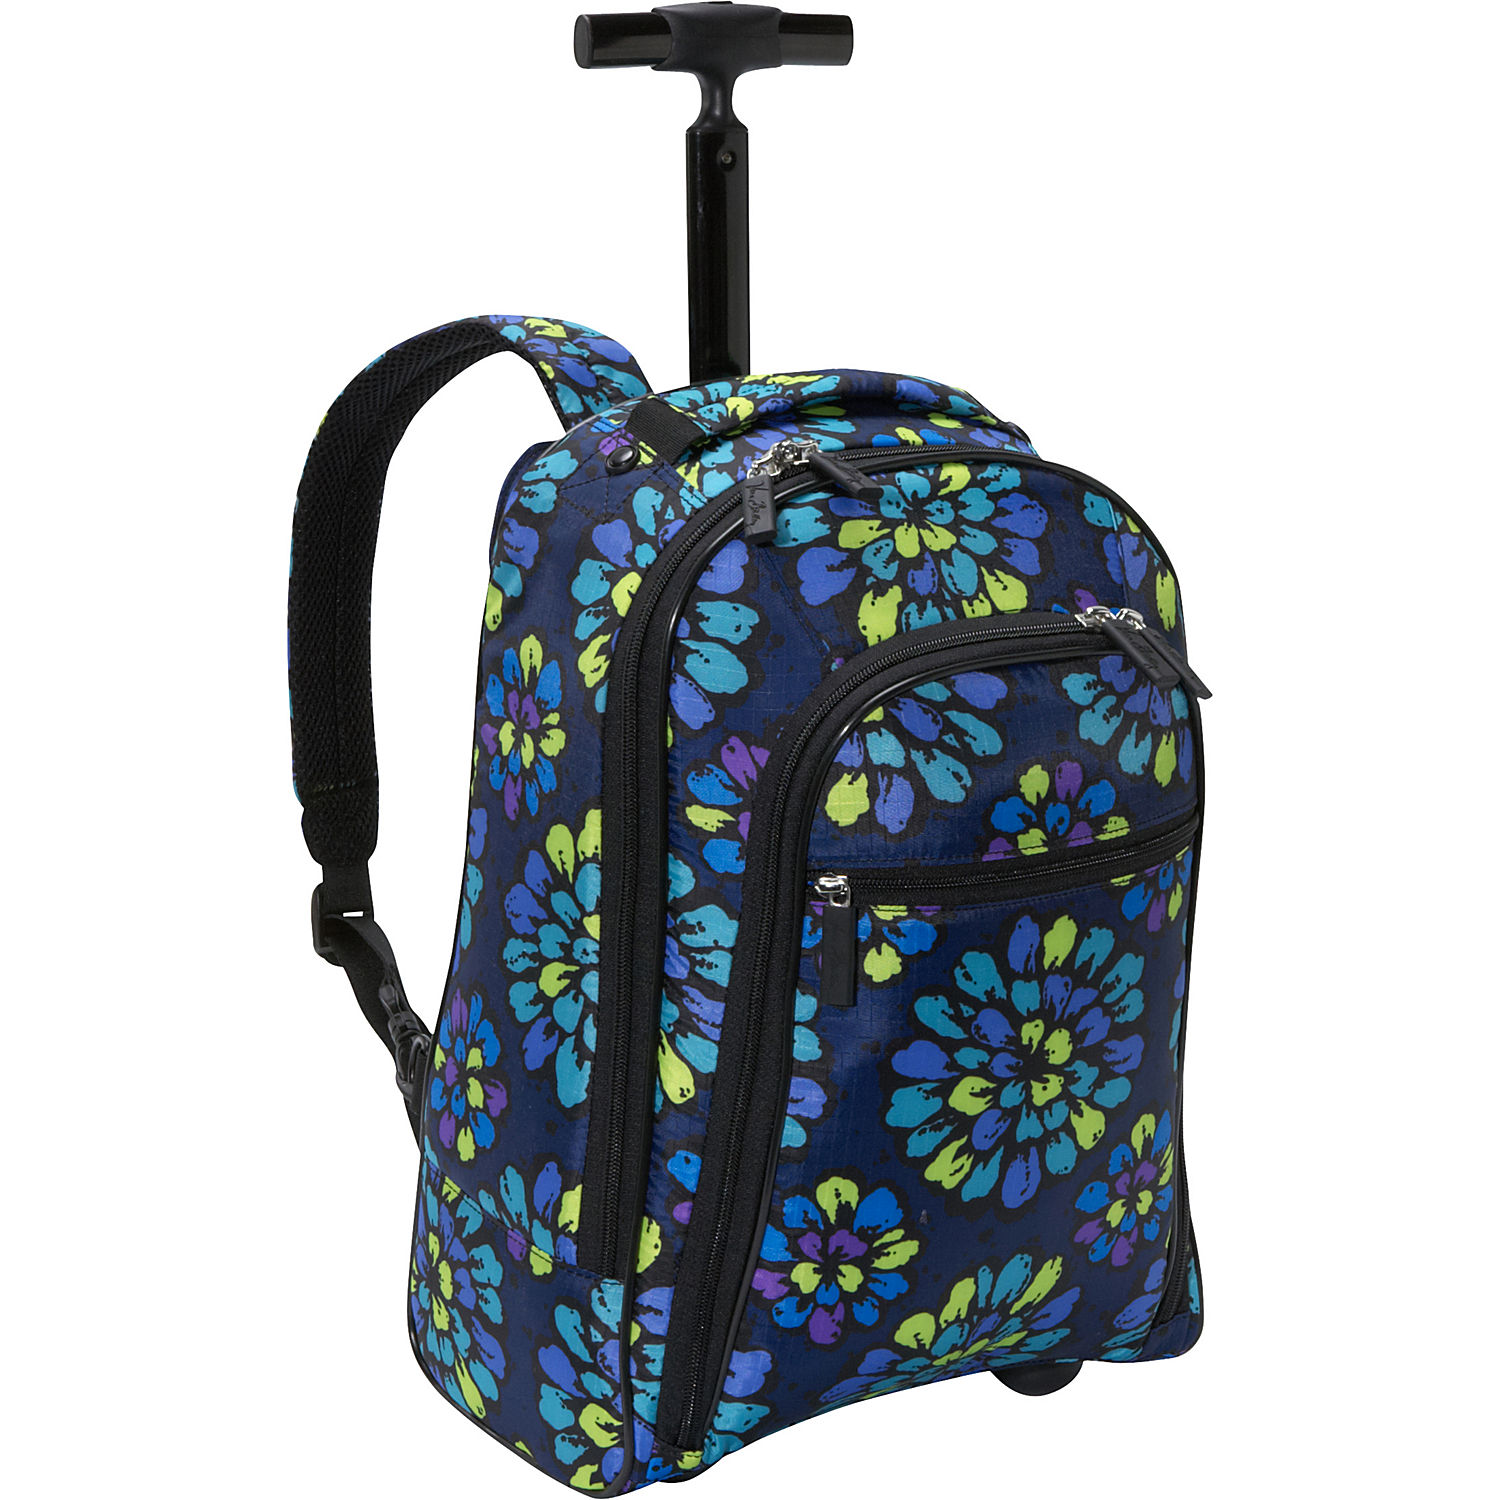 Small Tote Bags  Vera Bradley Rolling Backpacks 0a7b9650c3